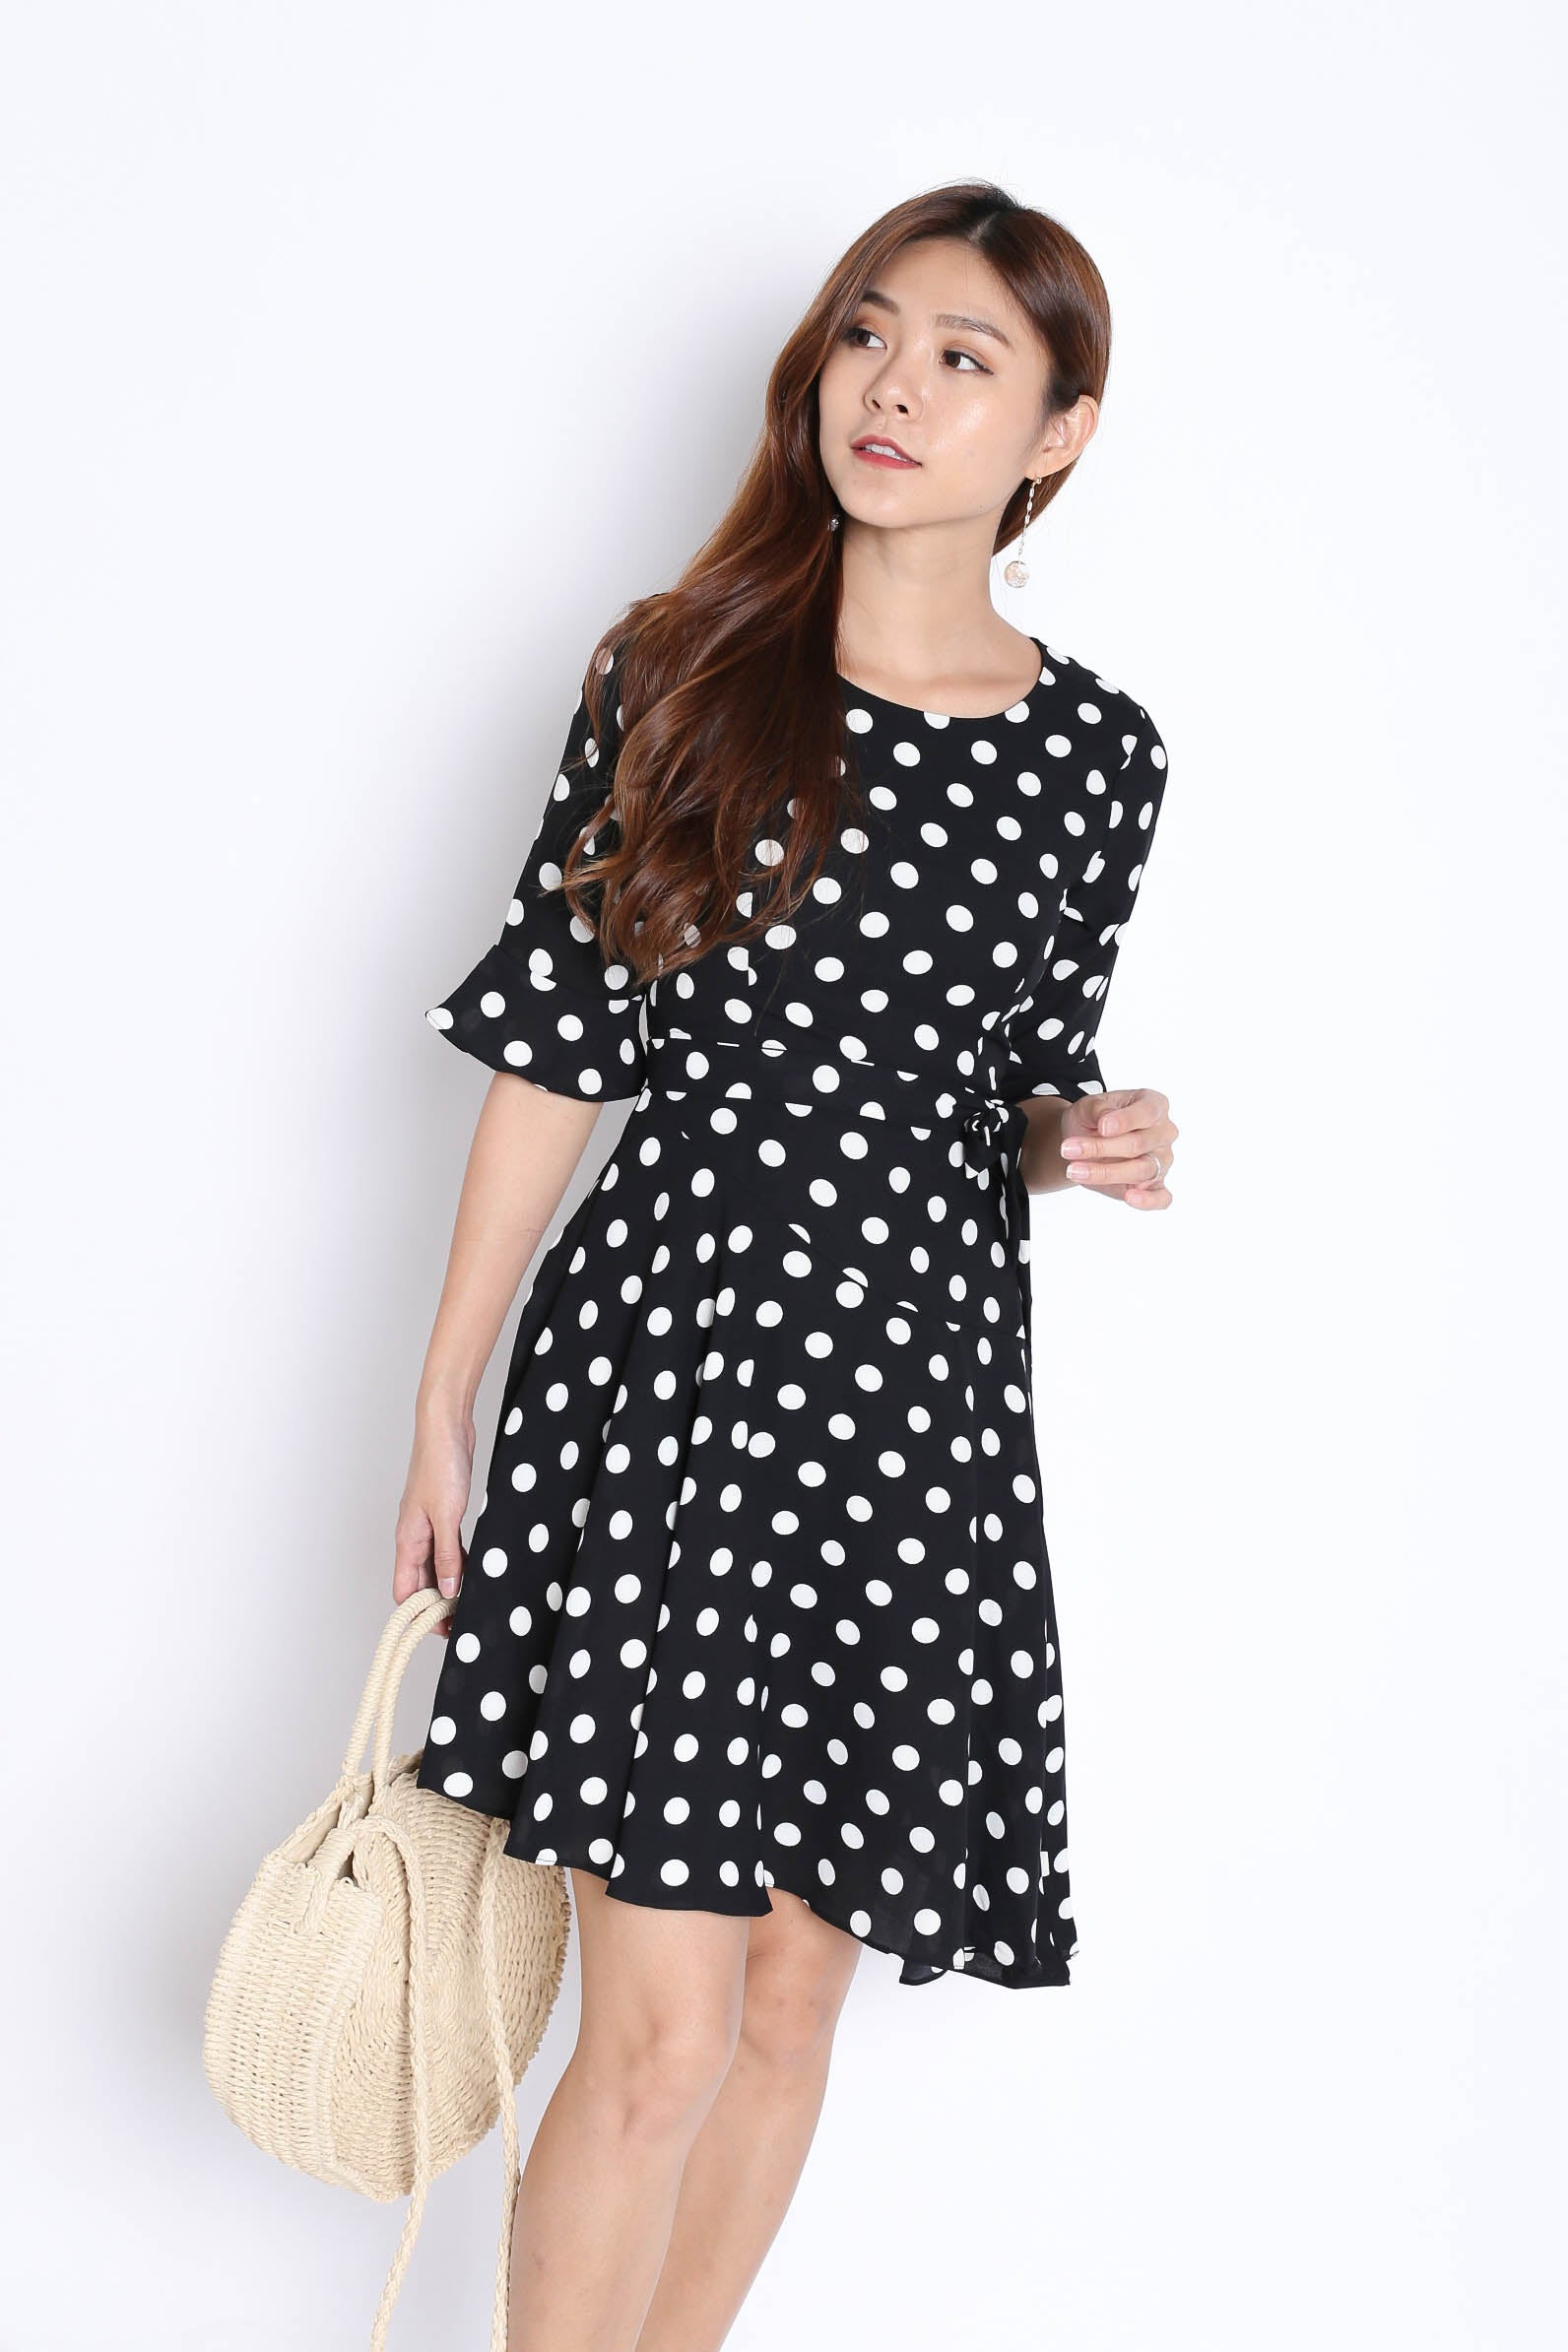 687dca3382d TPZ  (PREMIUM) SAFFRON POLKA DOT DRESS IN BLACK – TOPAZETTE